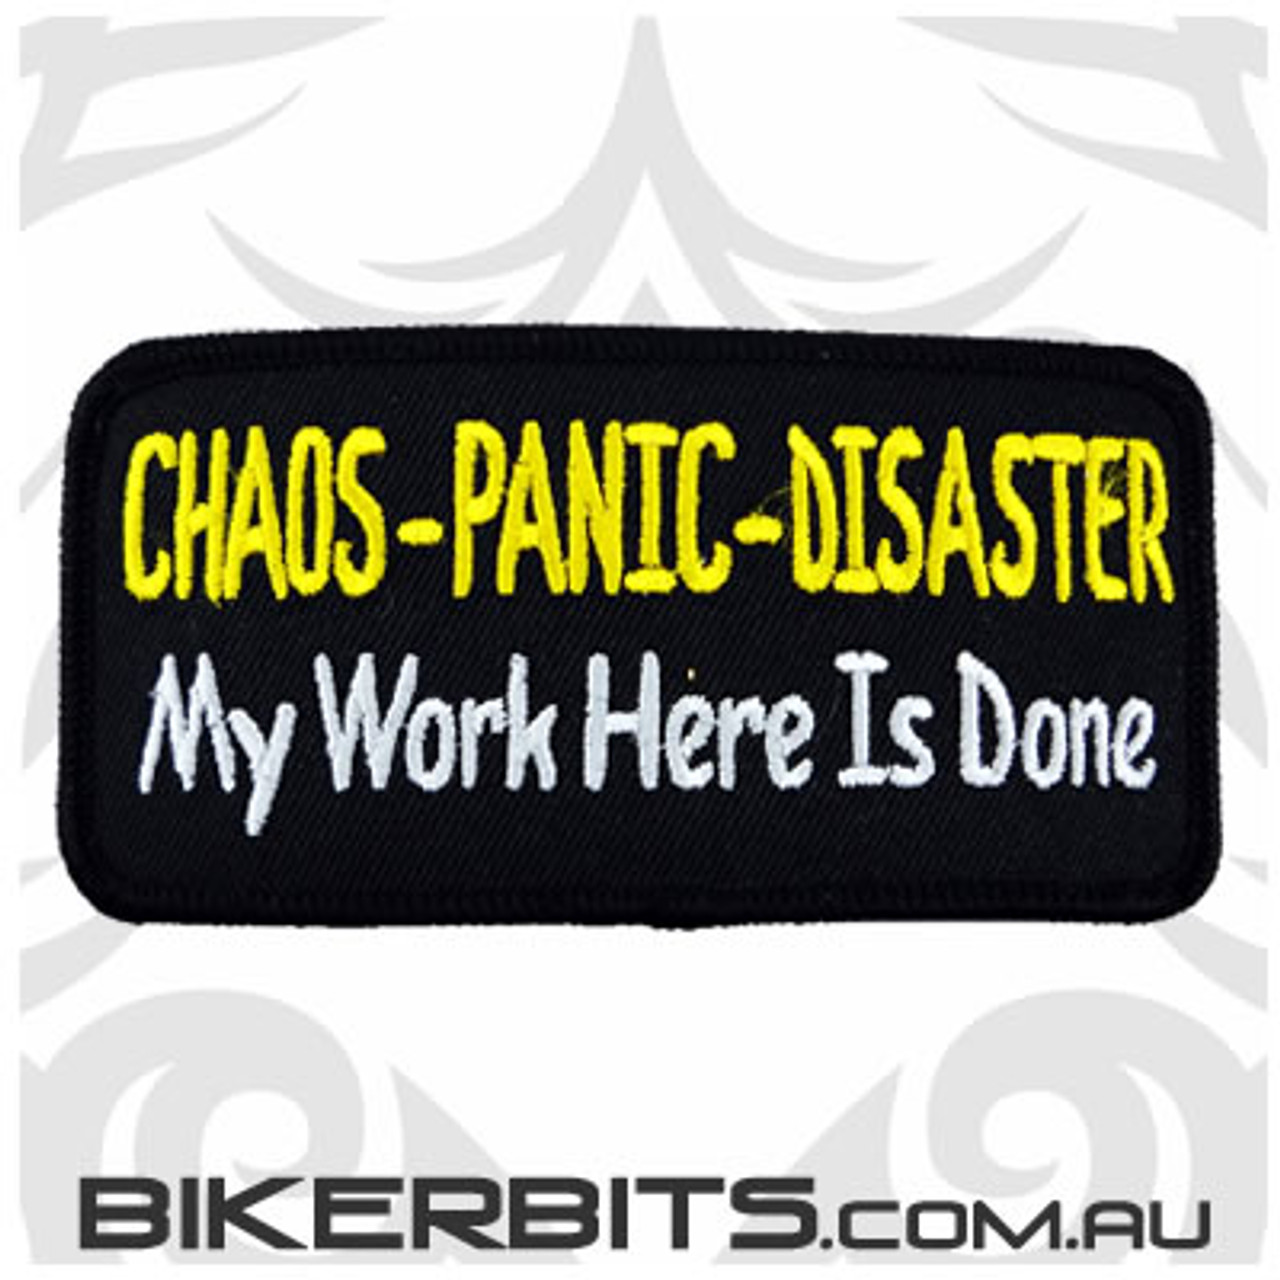 Patch - Chaos Panic Disaster My Work Here Is Done